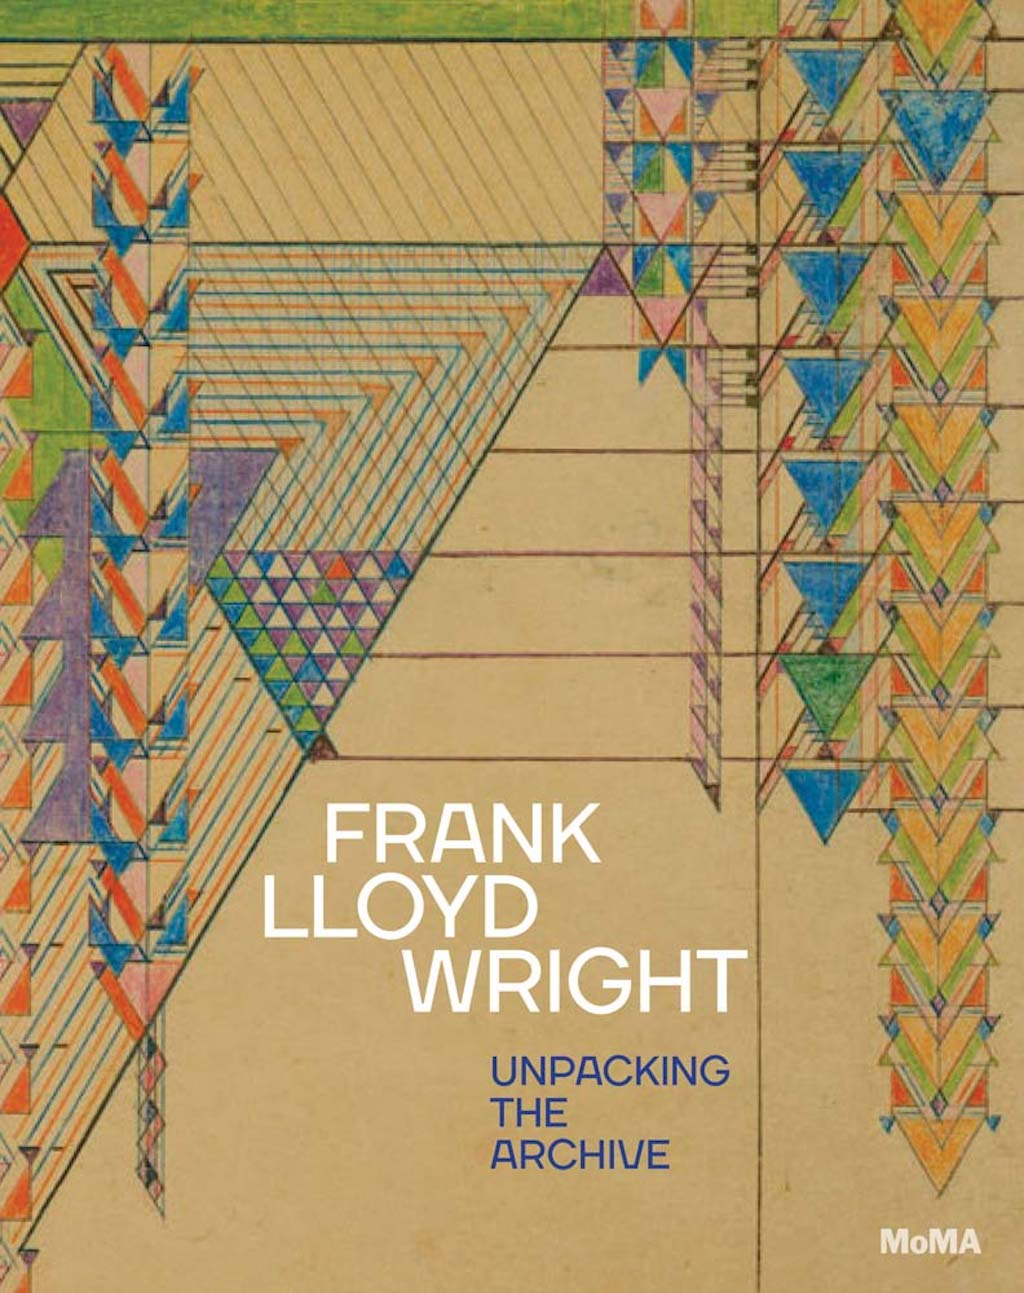 Frank Lloyd Wright: Unpacking the Archive edited by Barry Bergdoll   Courtesy of The Museum of Modern Art